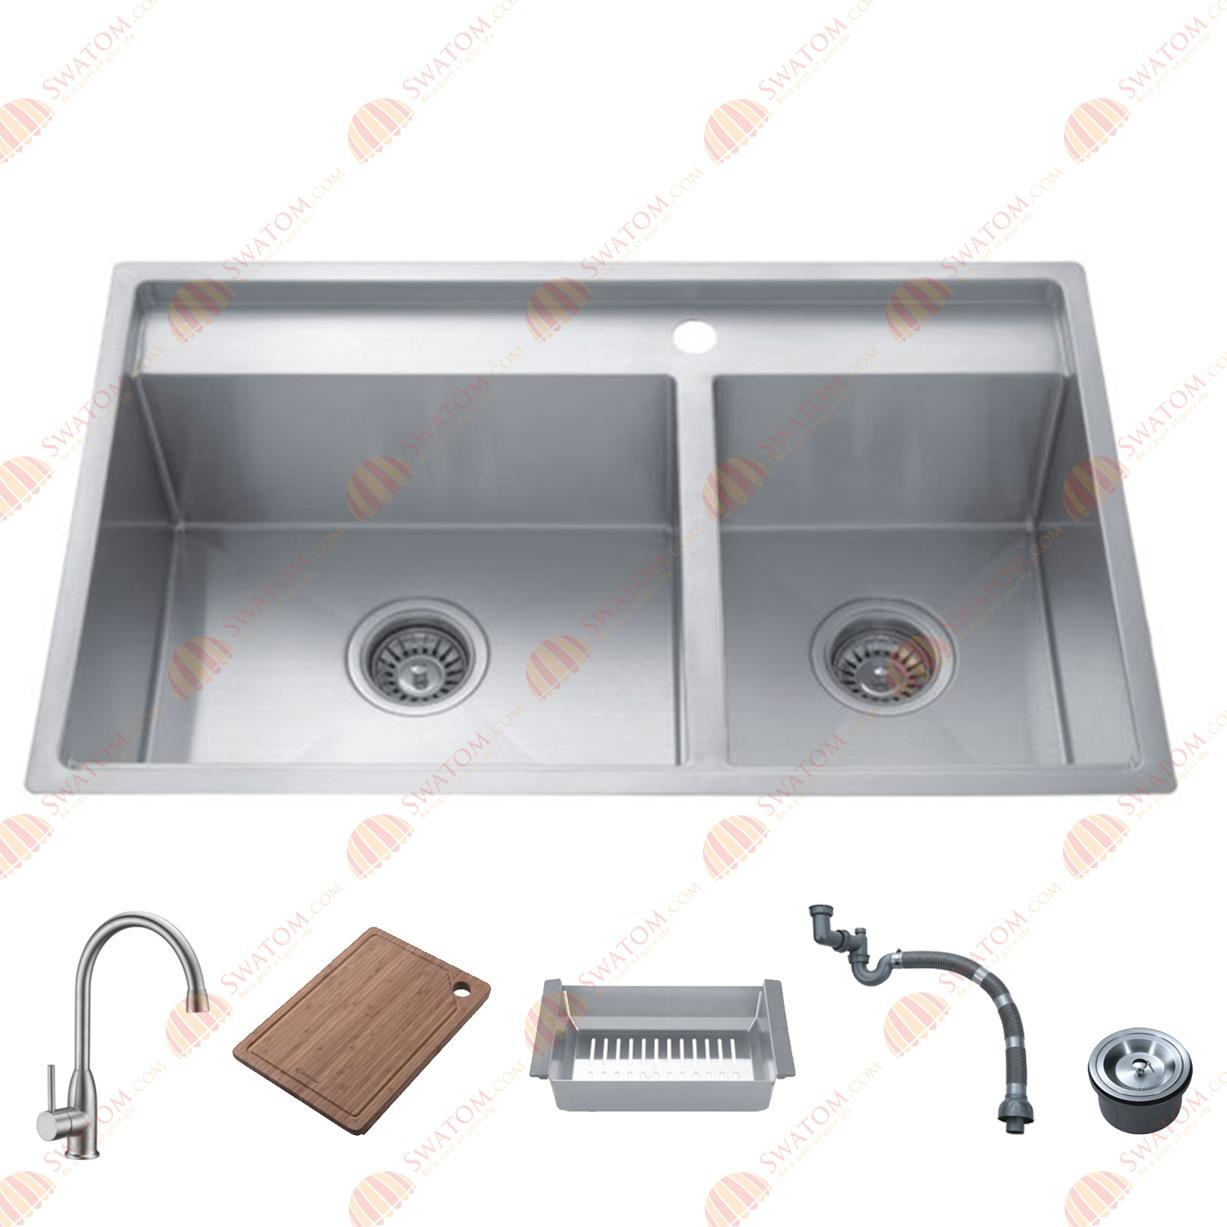 ... Drop in Double Bowl Kitchen Sink Free Accessories, handmade Sink(China